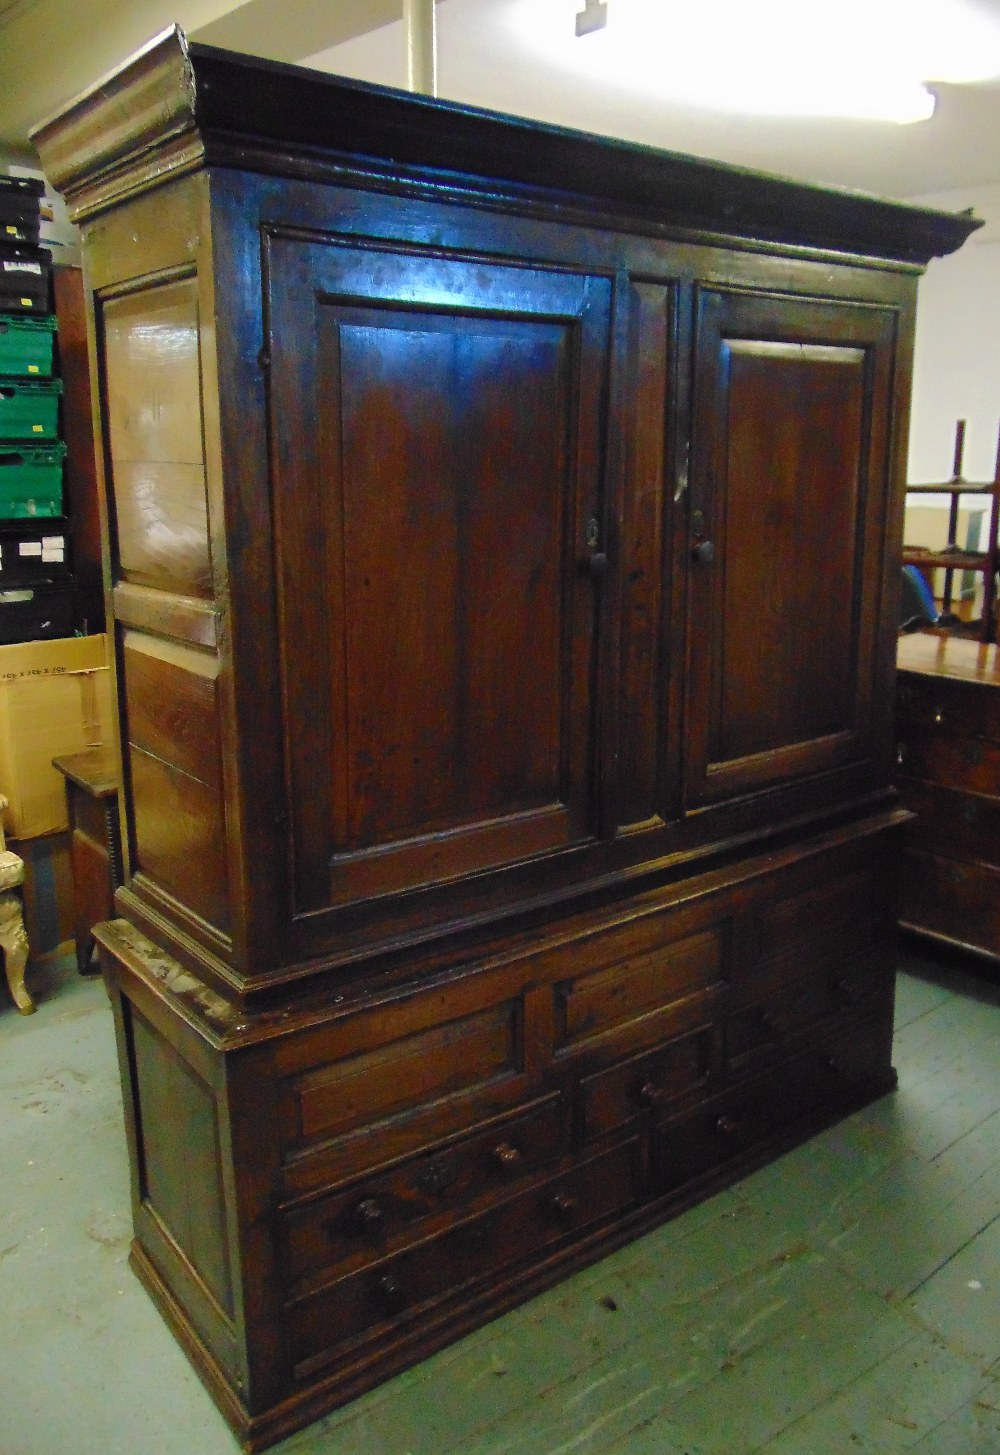 Lot 4 - An 18th century rectangular oak cupboard with hinged panelled doors, the plinth base with drawers